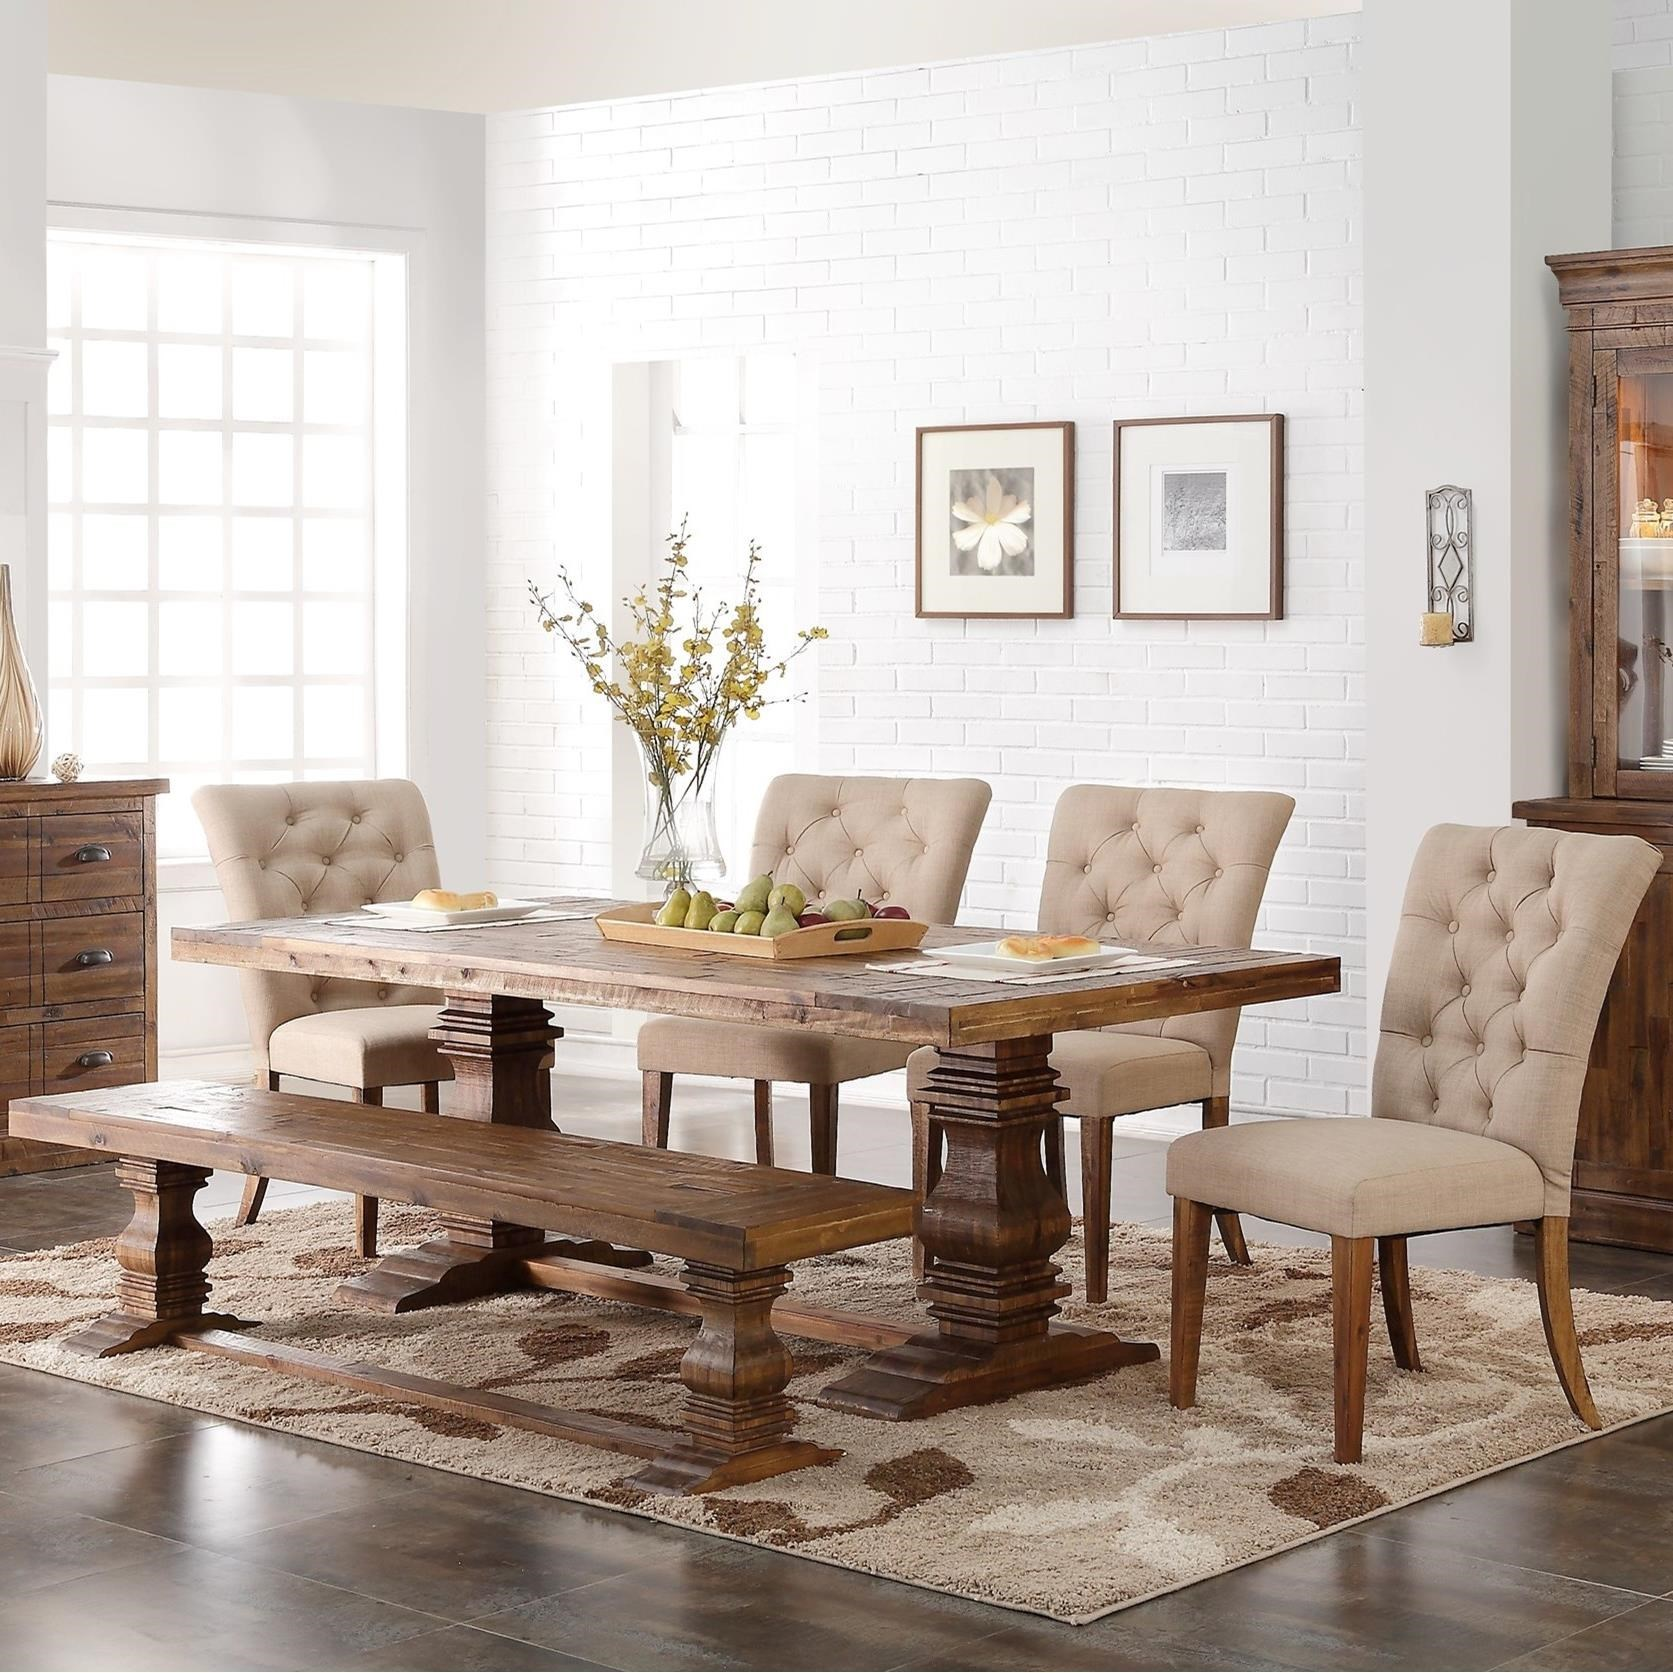 6 piece living room set cheap accessories new classic normandy double pedestal table and upholstered chair with bench by